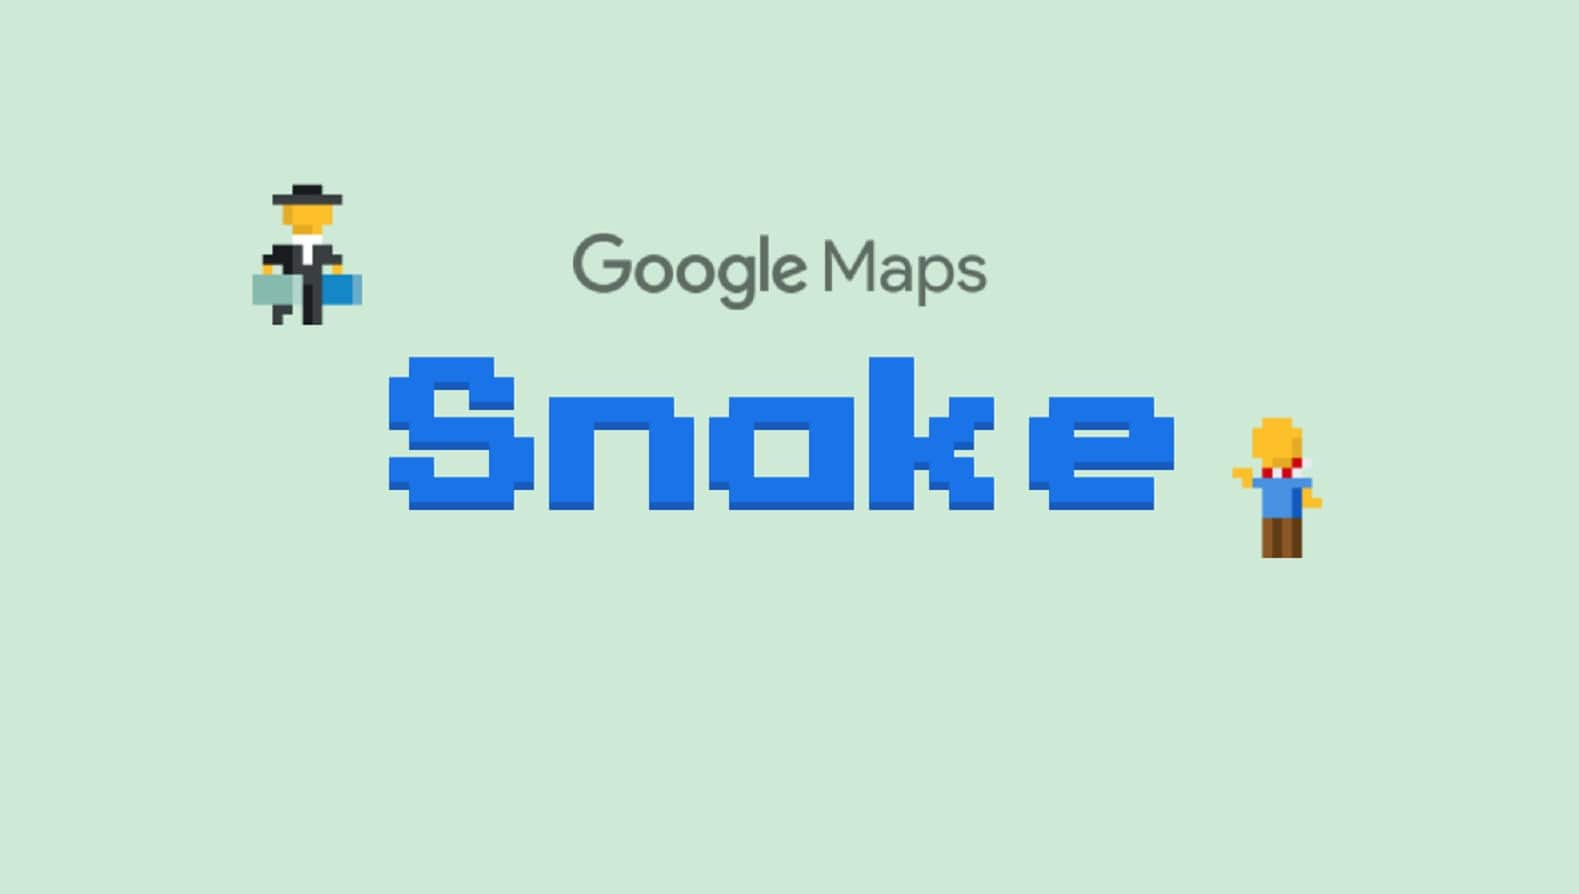 google maps snake game on april fools day